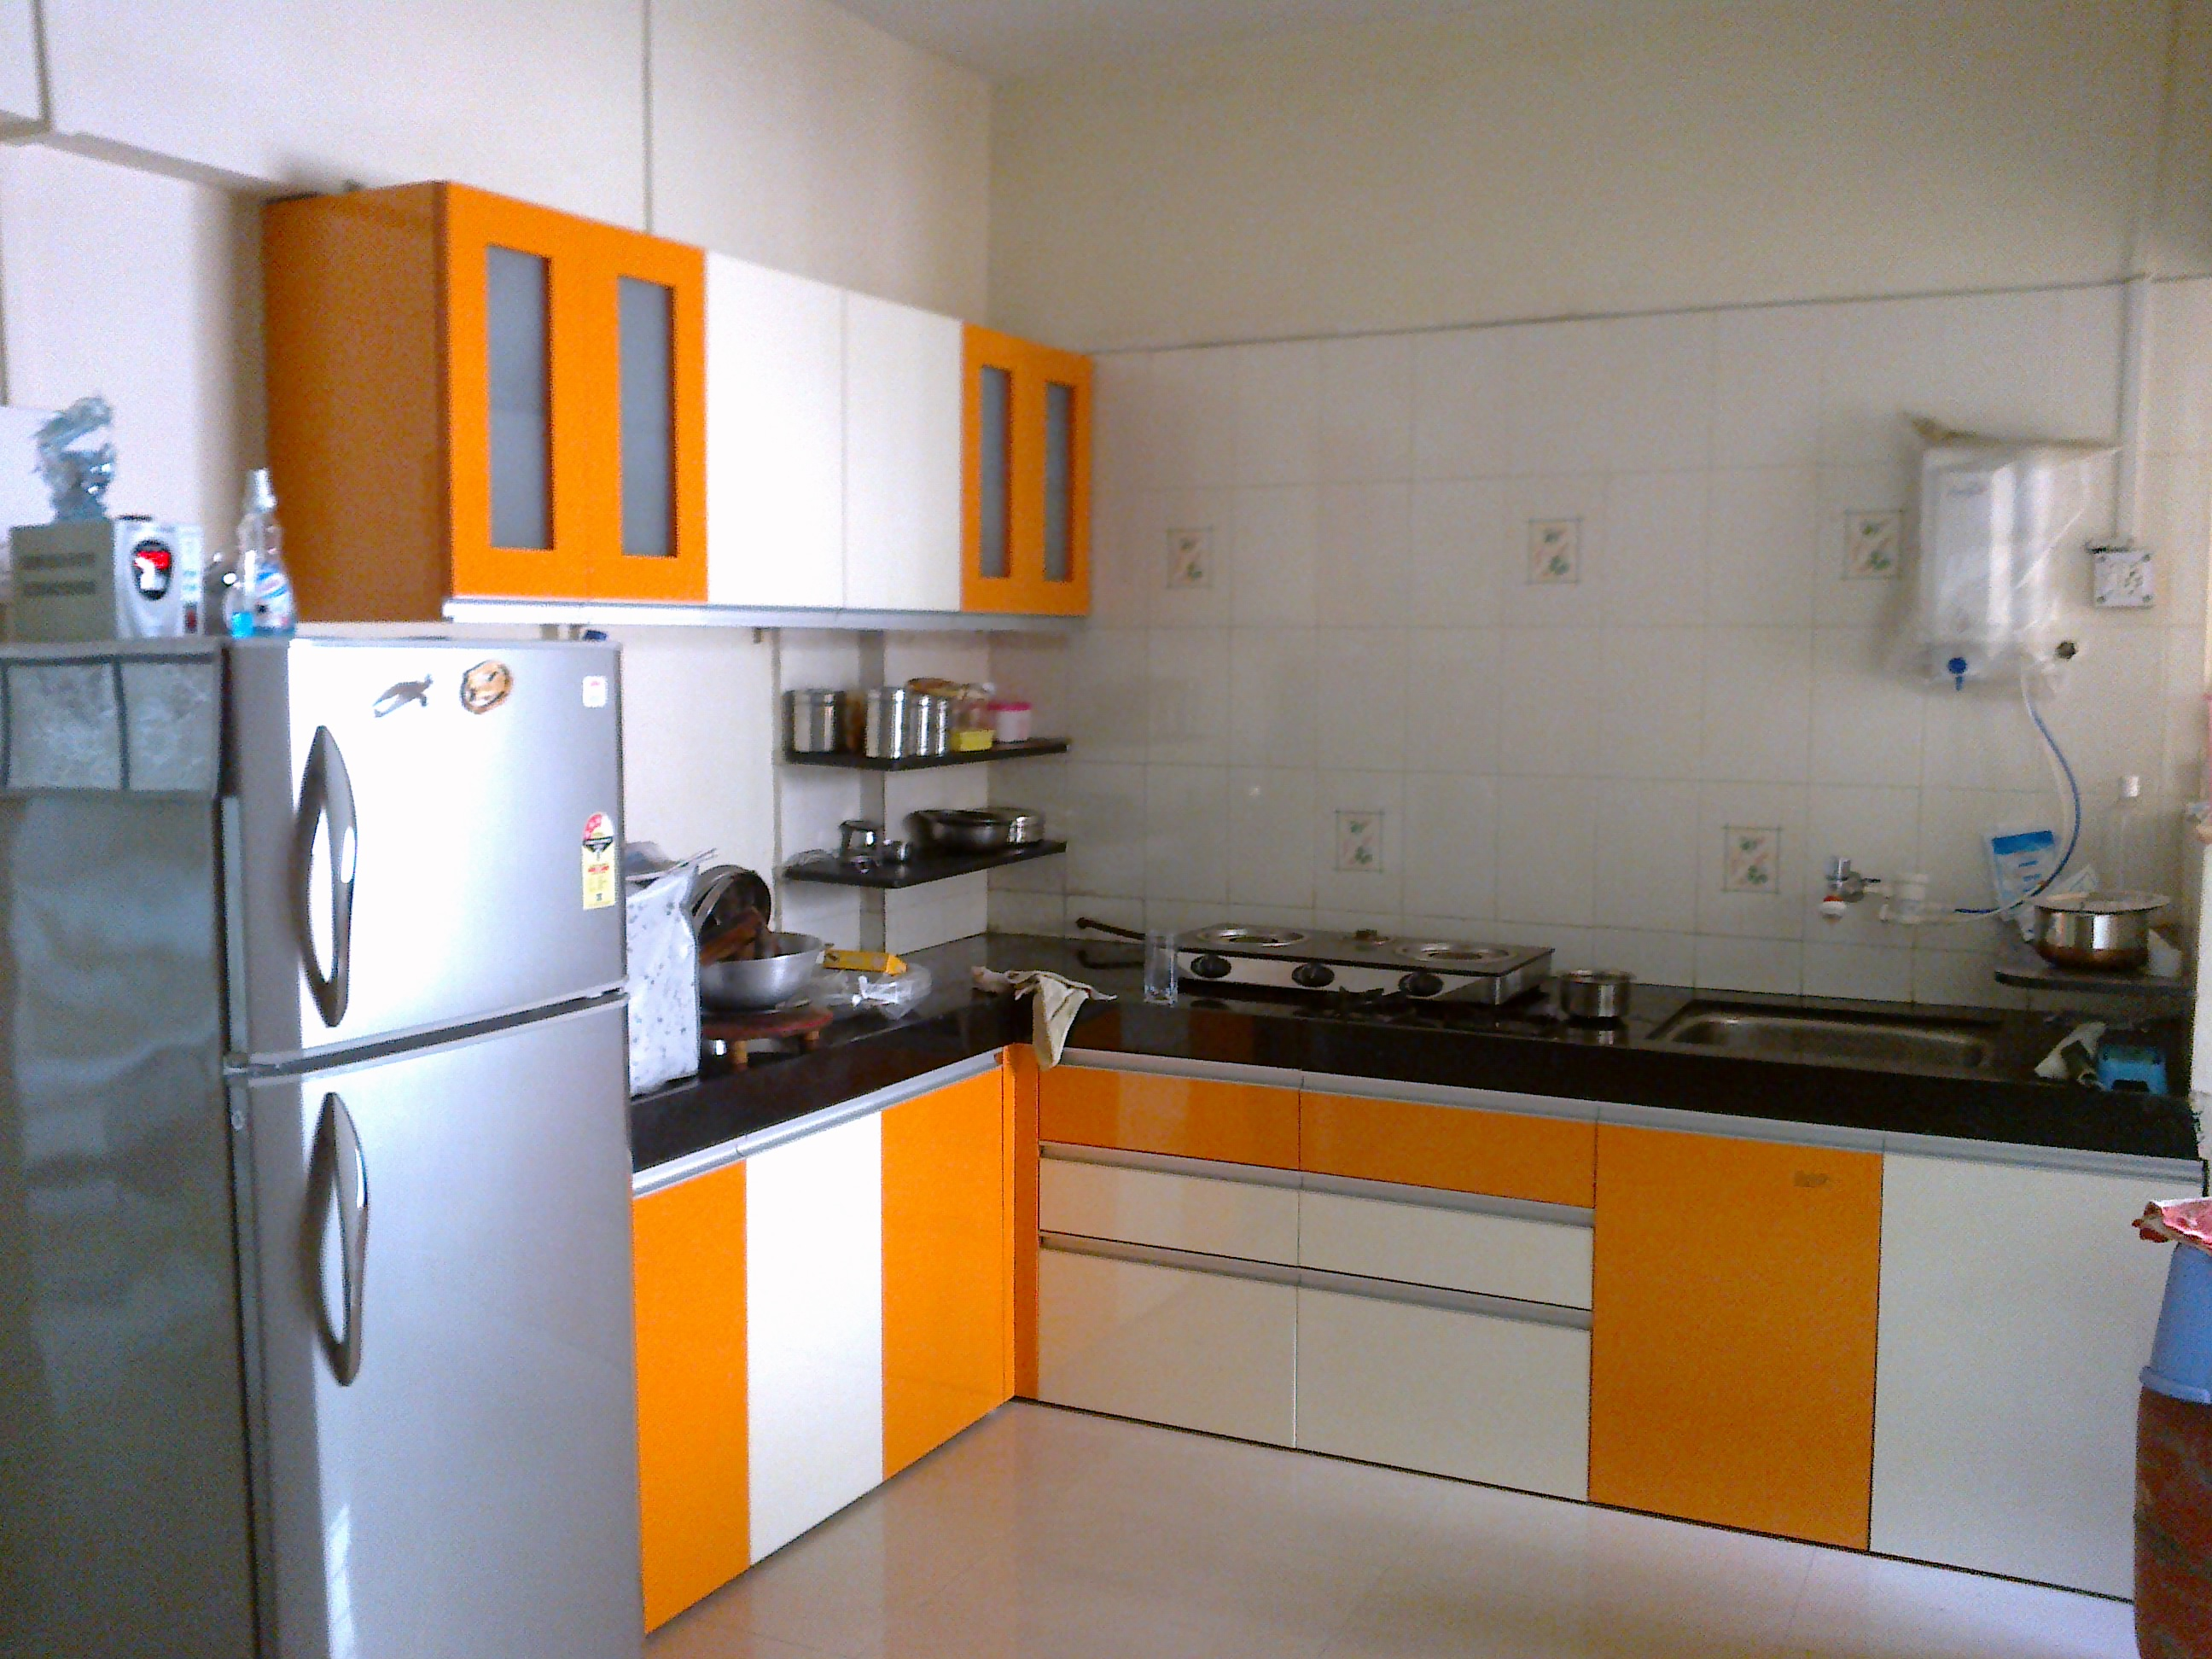 Shirke39s kitchen interior shirke39s kitchen interior for Interior design kitchen in pune